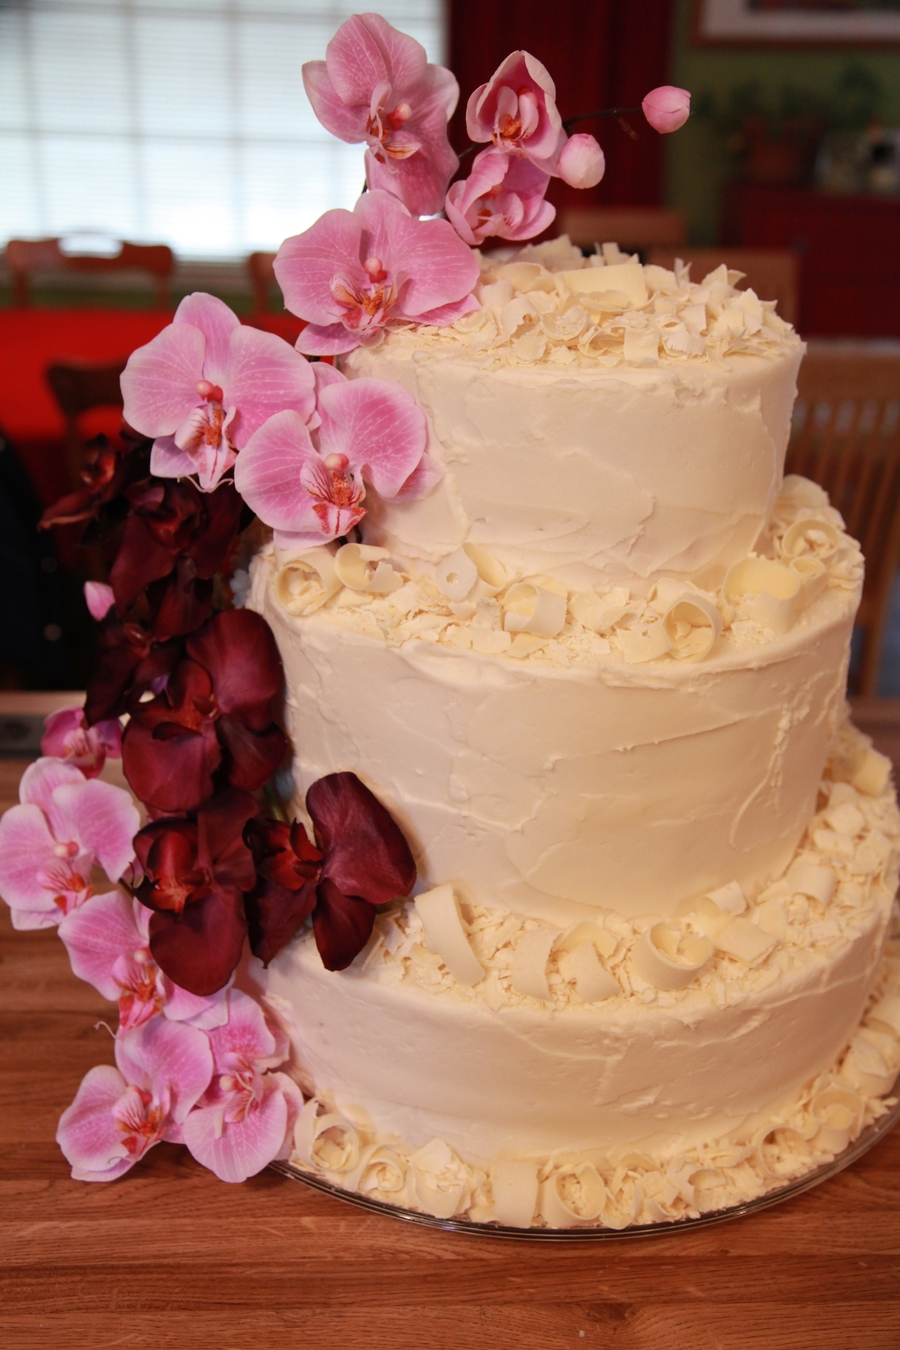 Astounding Orchids And White Chocolate 50Th Birthday Cake Cakecentral Com Funny Birthday Cards Online Aboleapandamsfinfo